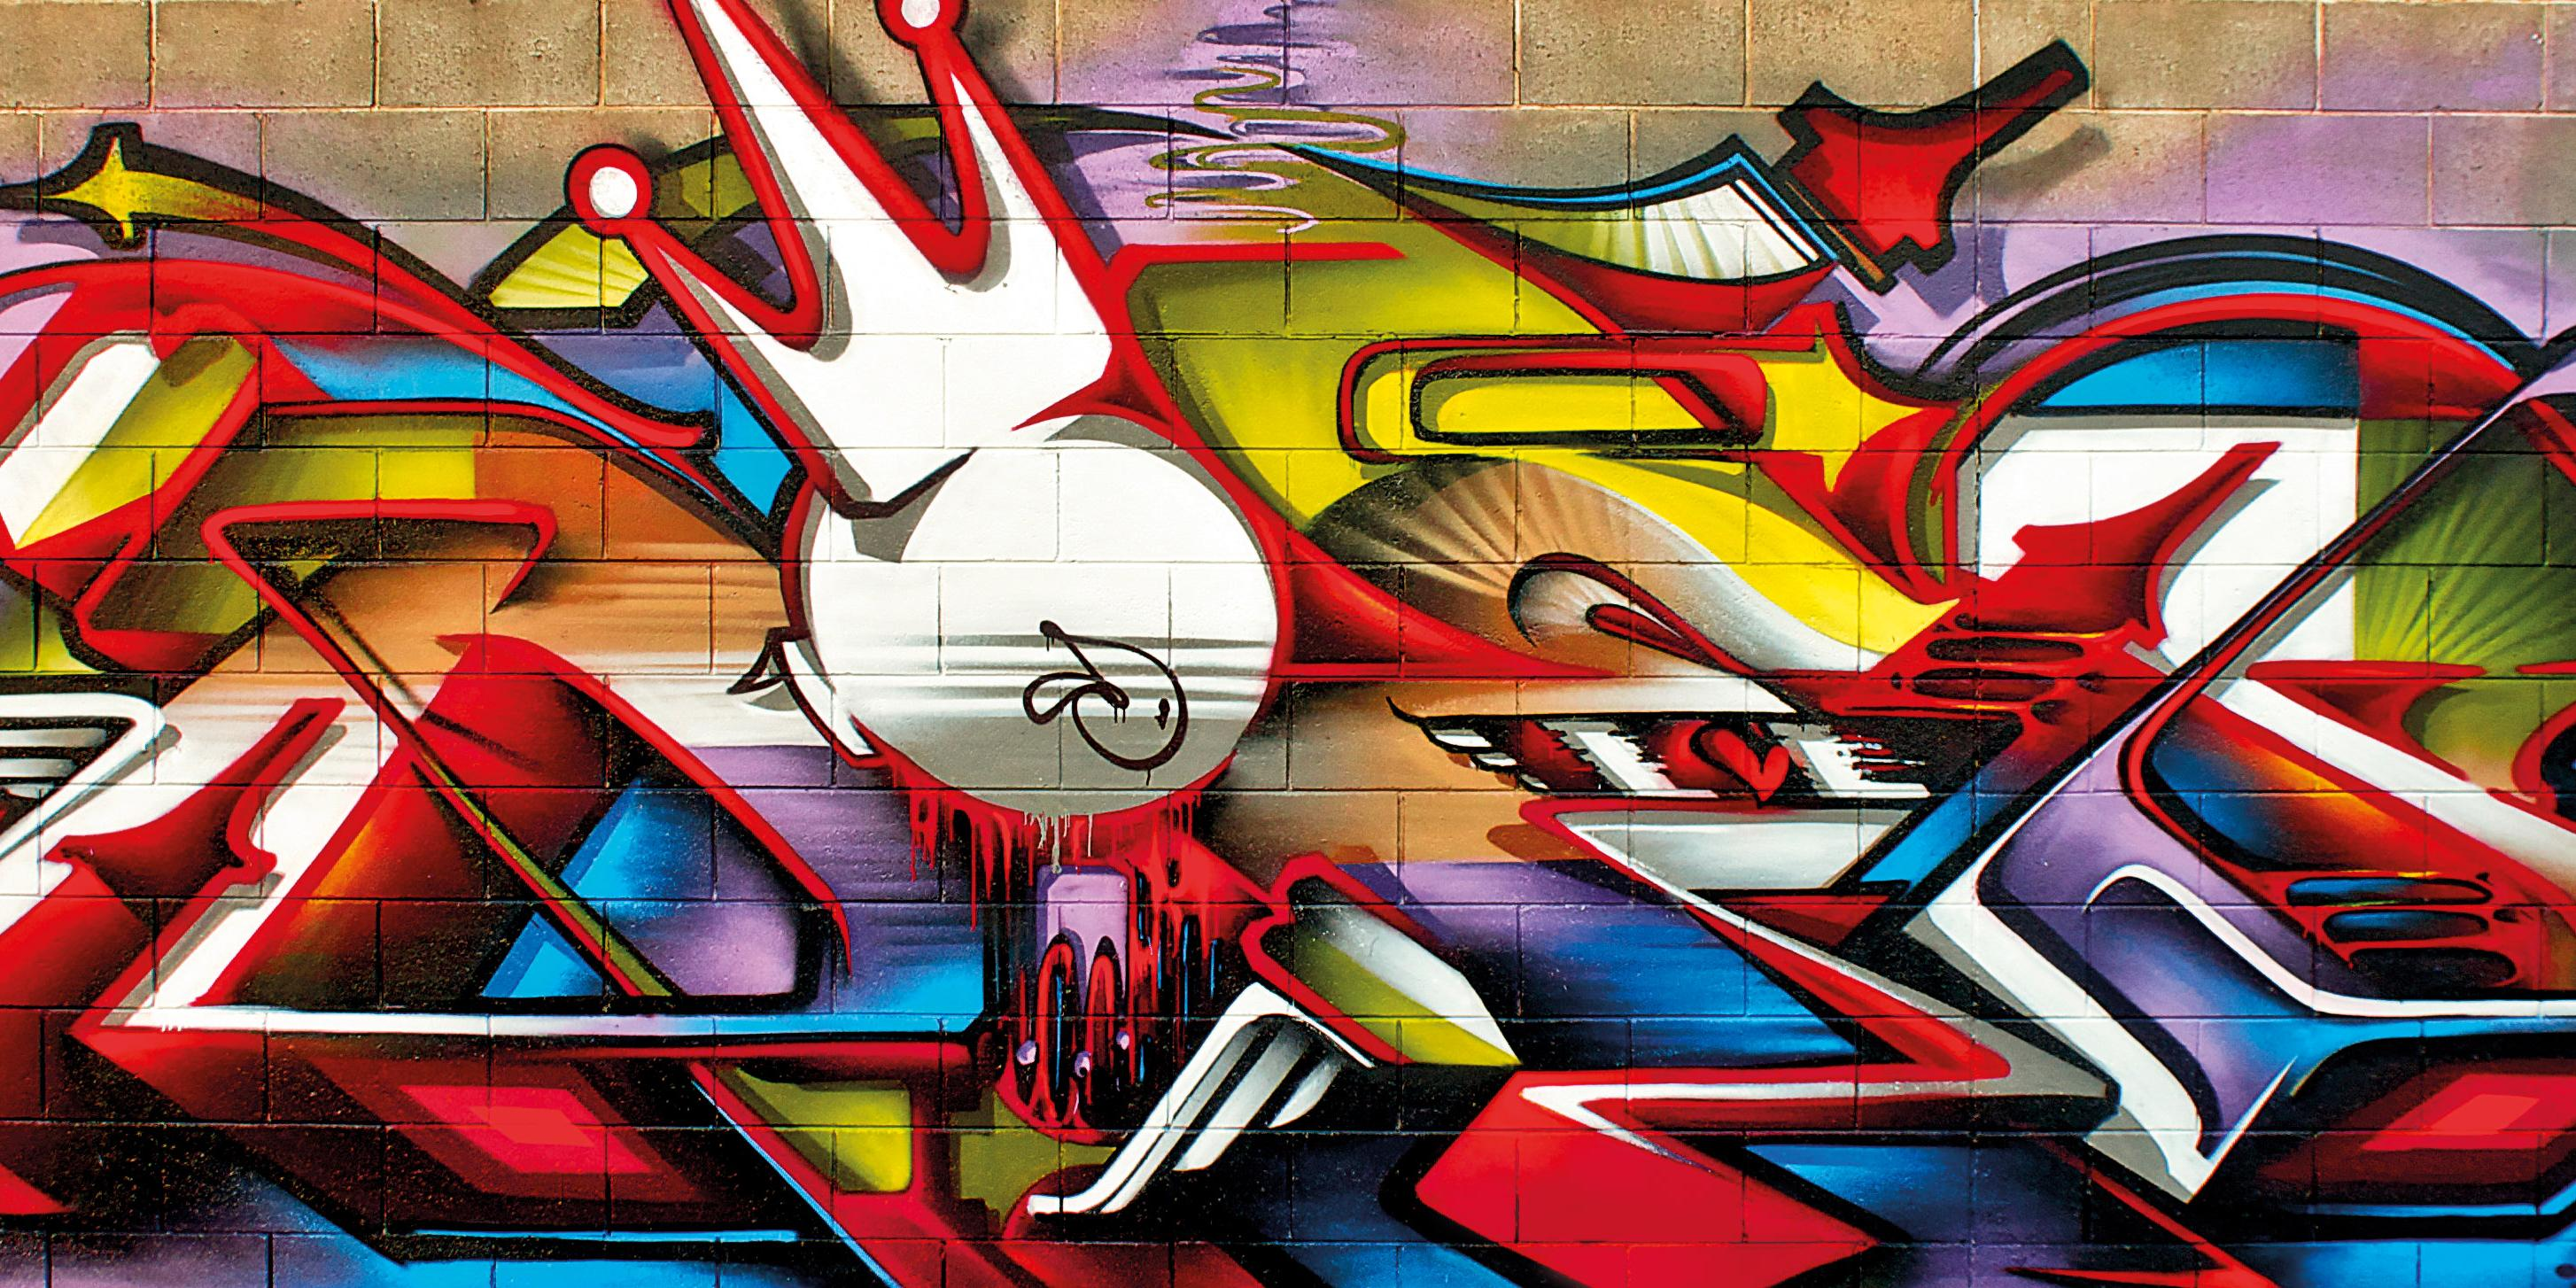 A work by Does - Adelaide australia mural detail 1